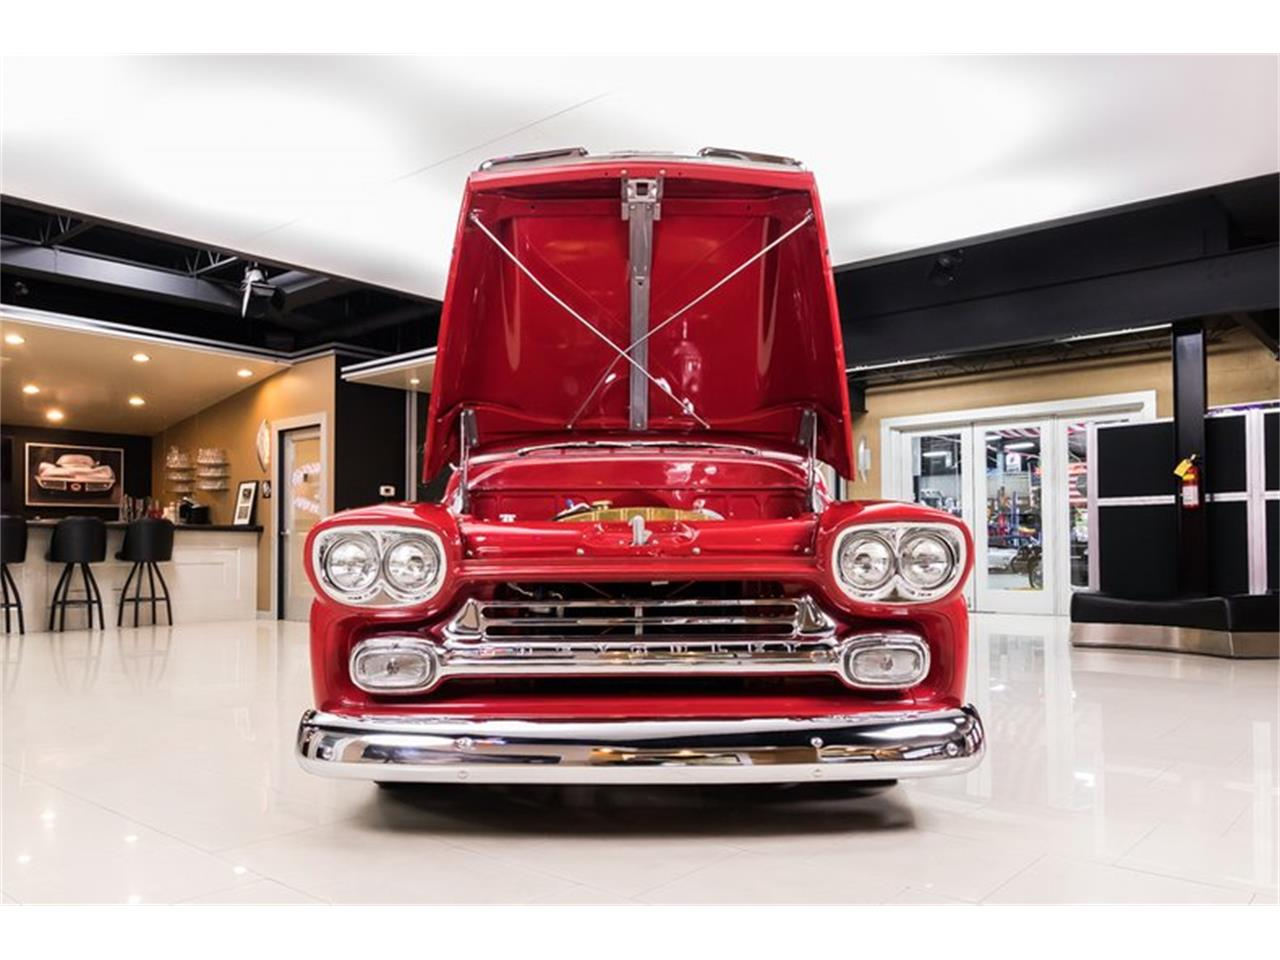 Large Picture of '59 Chevrolet Apache located in Michigan - $59,900.00 - QKLK